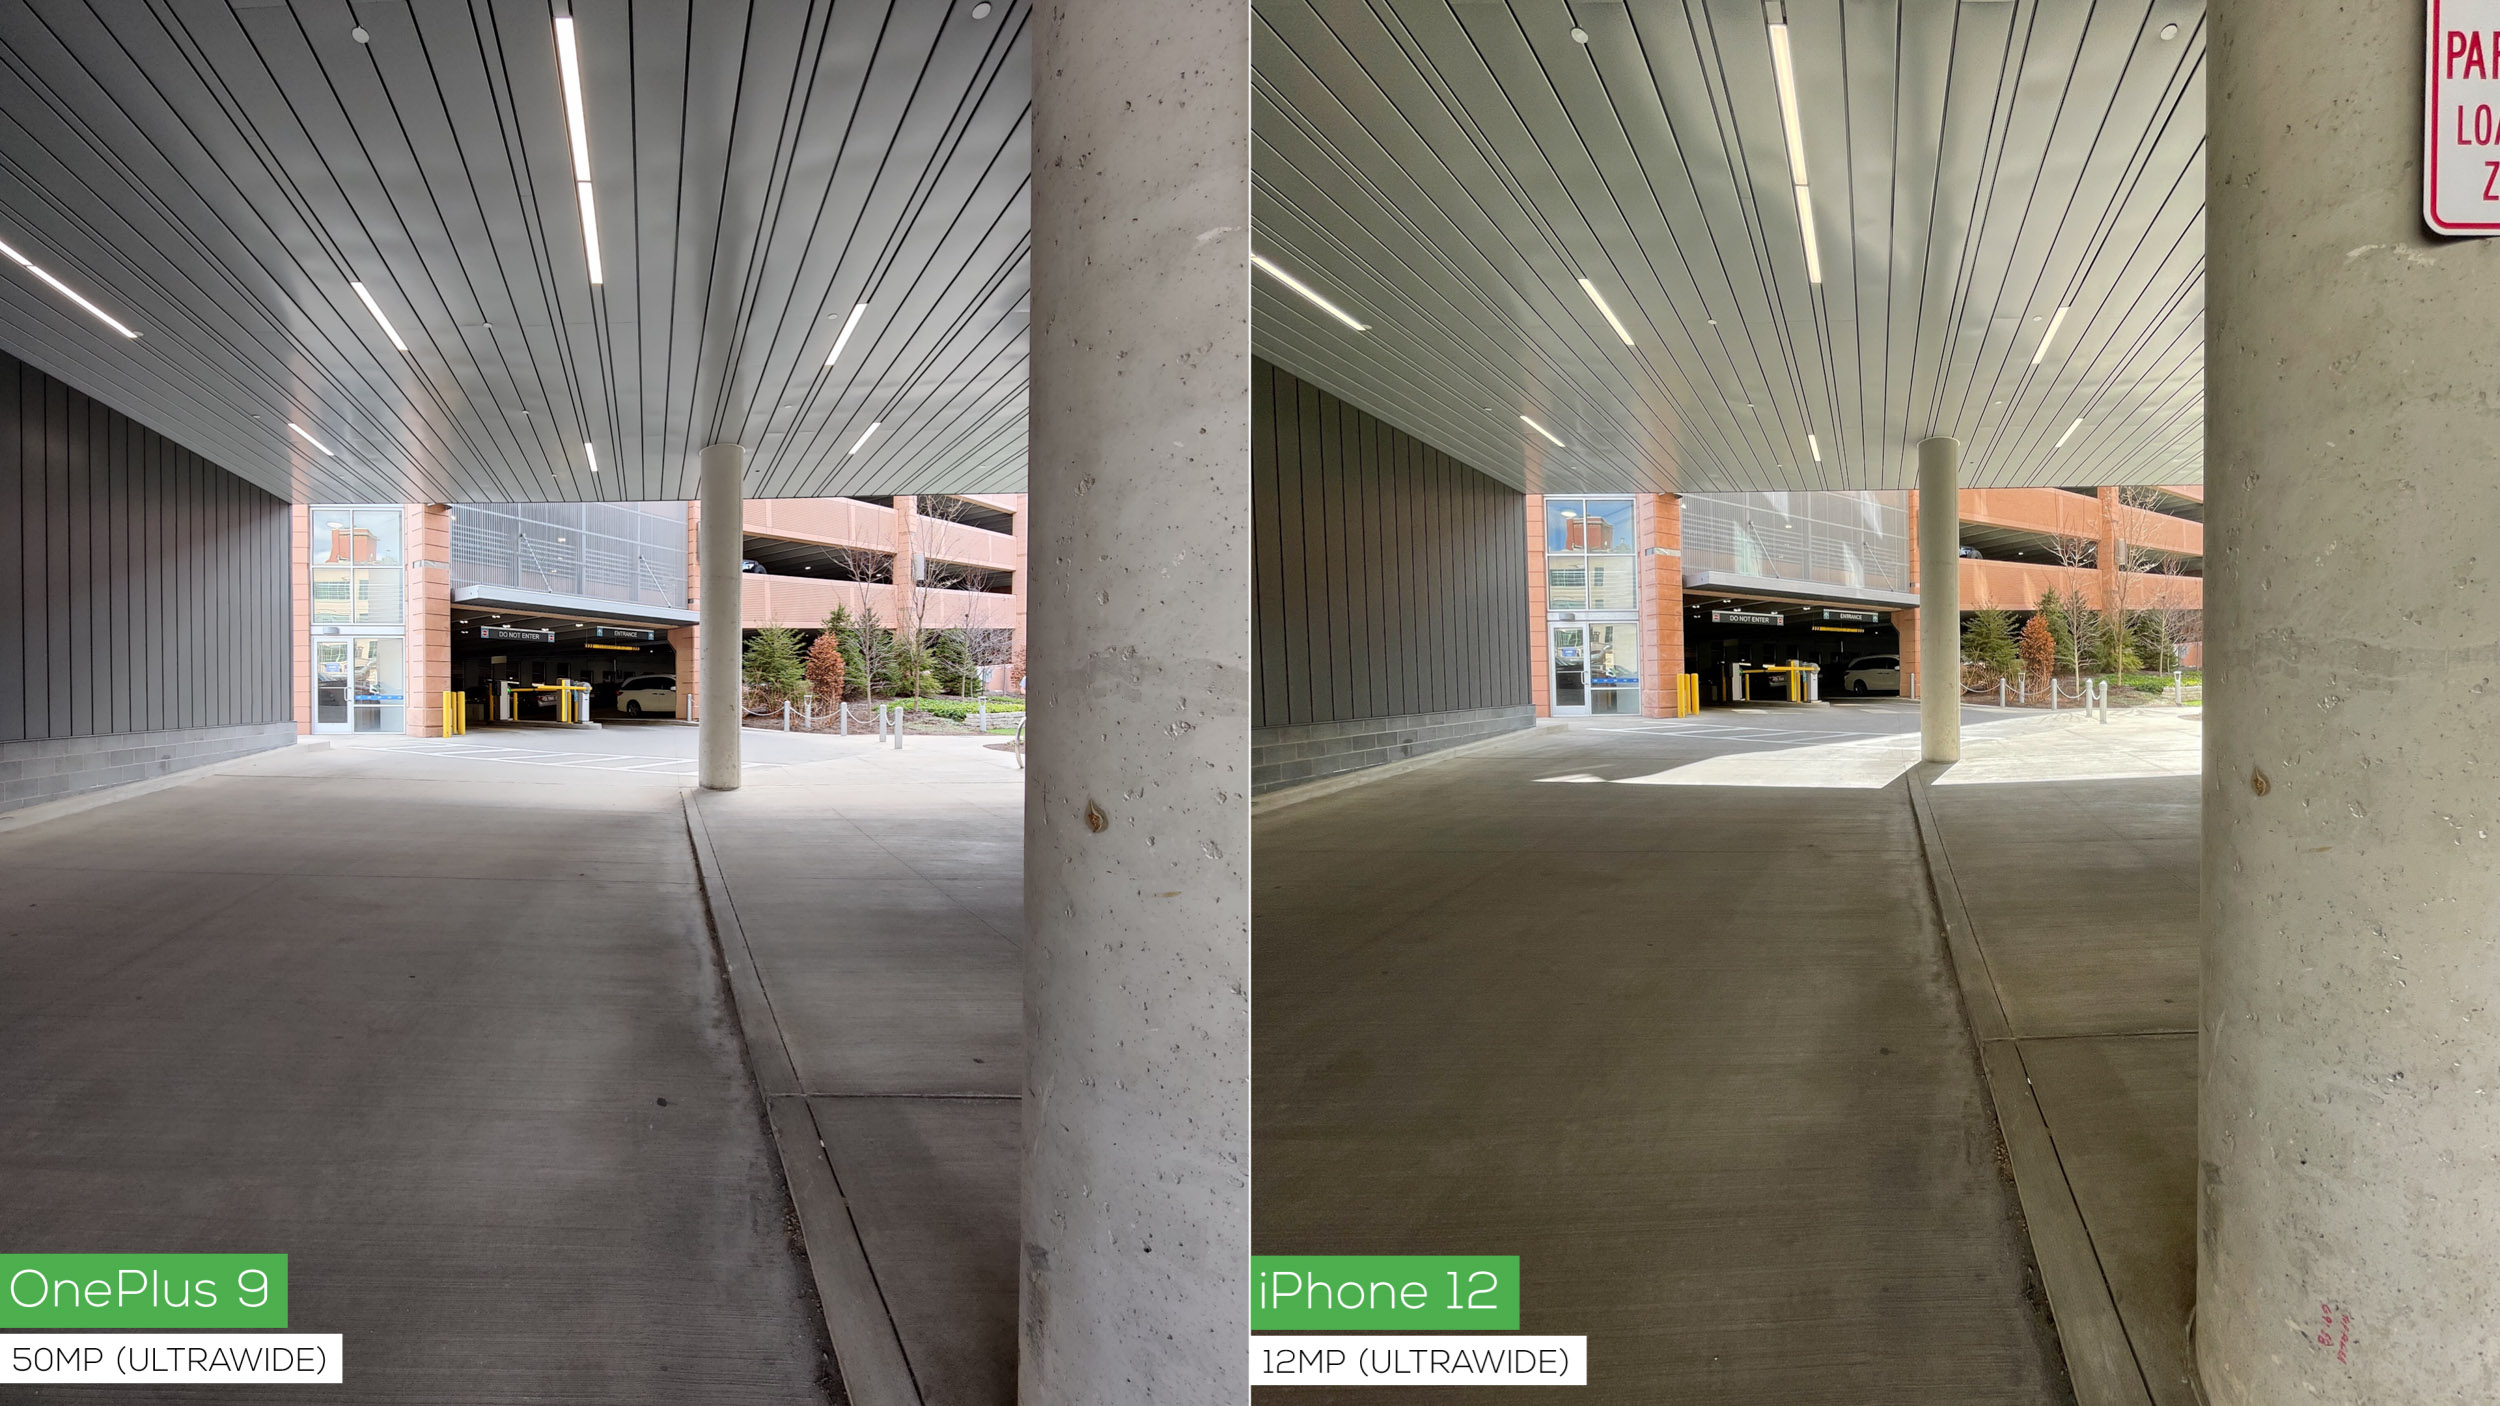 OnePlus 9 versus iPhone 12 camera comparison: two steps forward, one step back